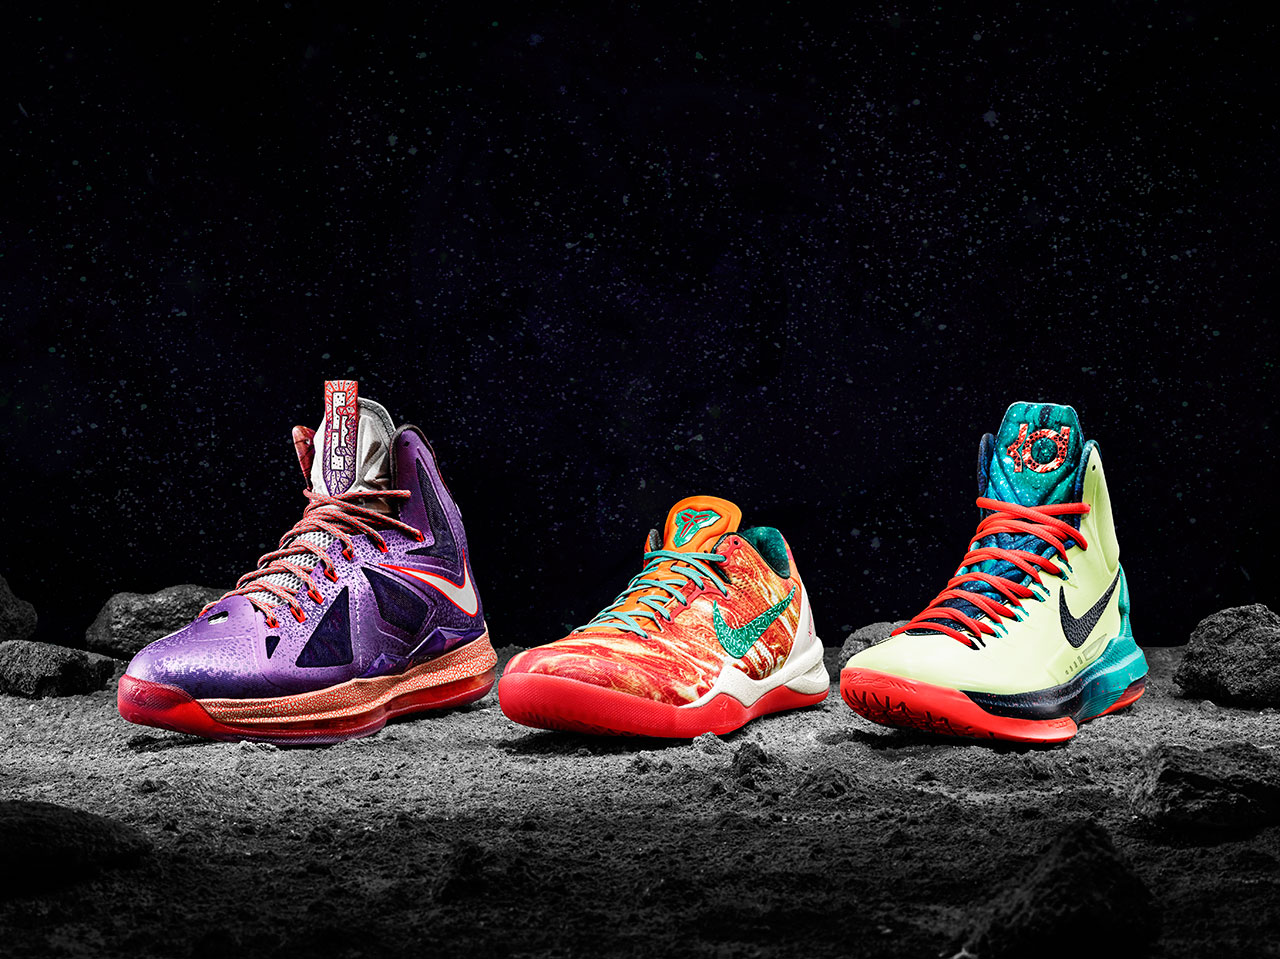 Mission Control 'Houston' Helps Launch New Nike Sneakers | Space